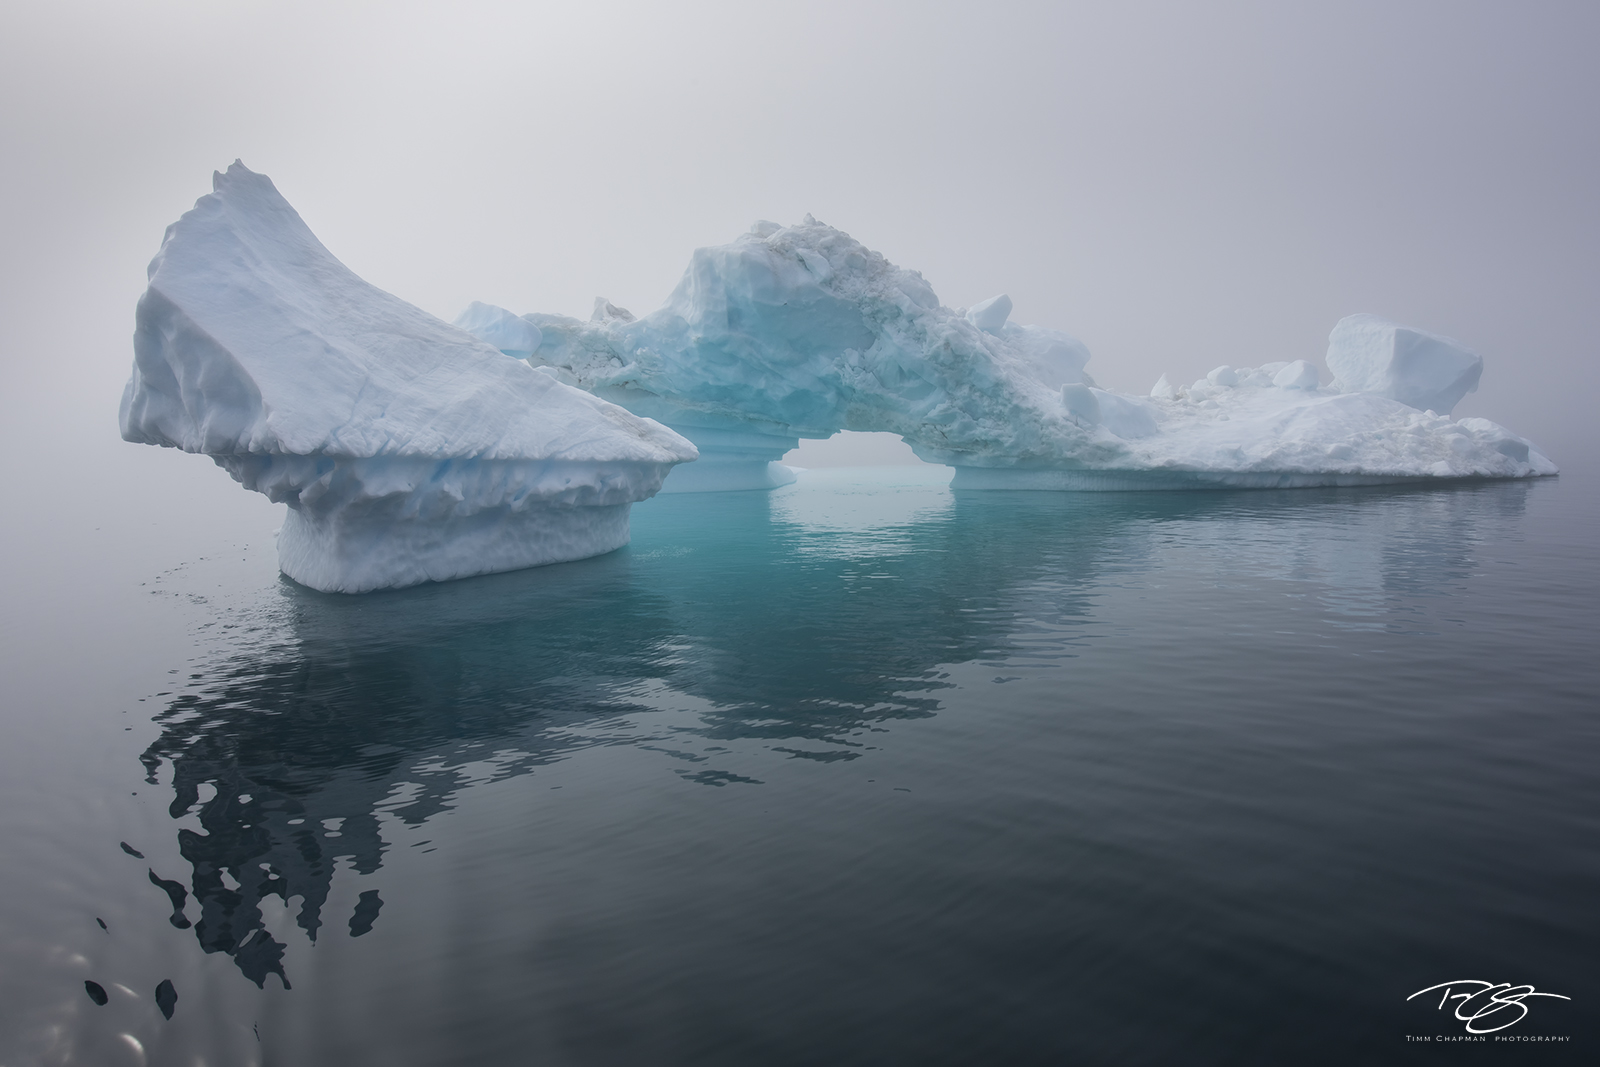 A spectacularly sculpted iceberg emerges from the thick fog covering West Greenland's Disko Bay